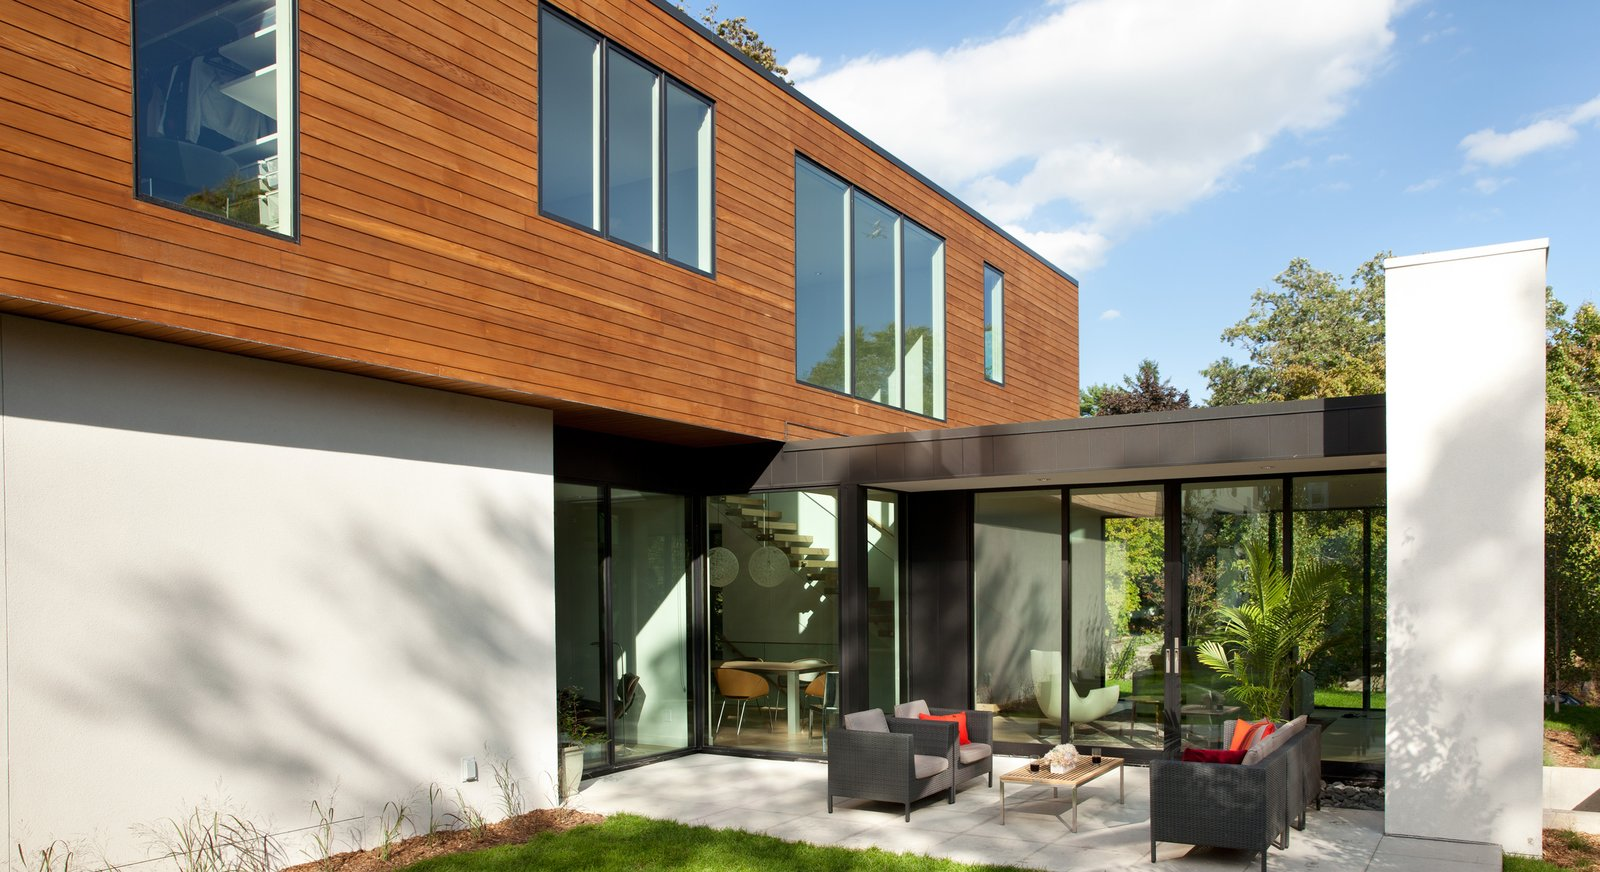 Outdoor, Back Yard, Wood Patio, Porch, Deck, Metal Patio, Porch, Deck, and Pavers Patio, Porch, Deck  Sheridan Residence by Peterssen/Keller Architecture